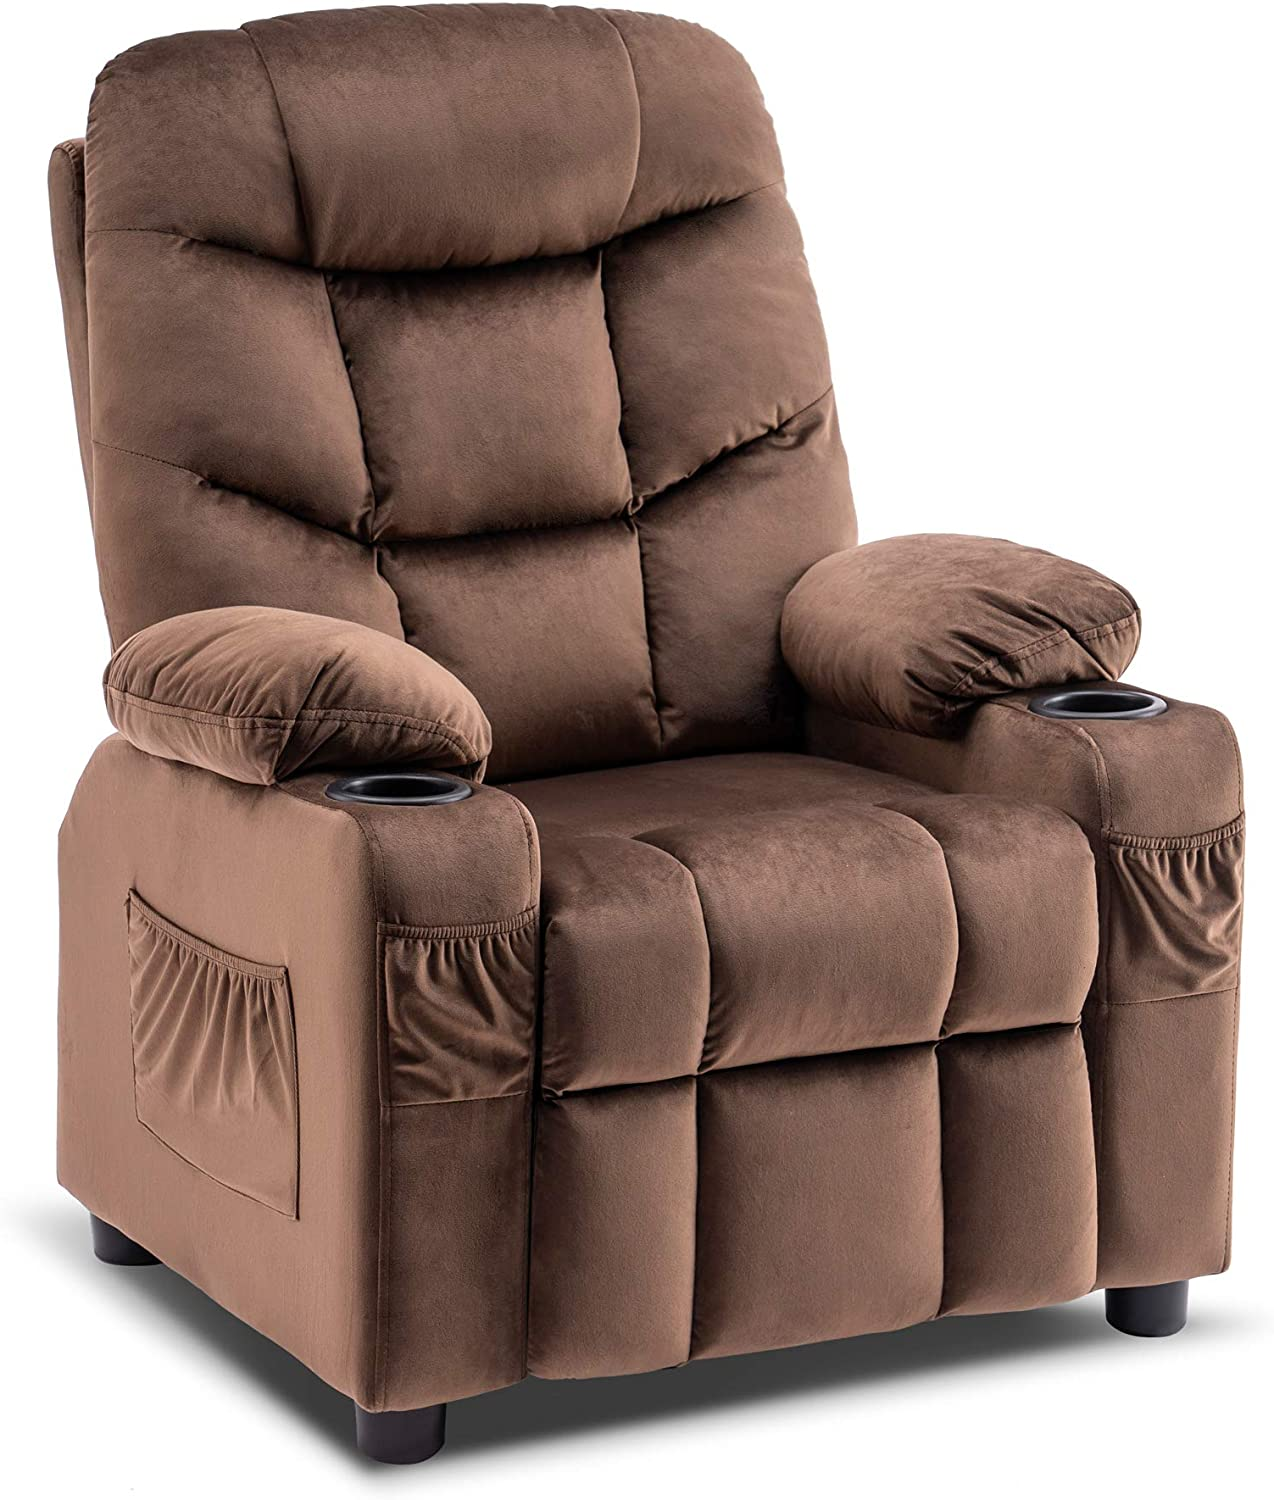 Mcombo Big Kids Recliner Chair with for Cup Gir All items free shipping Boys and Holders Max 56% OFF